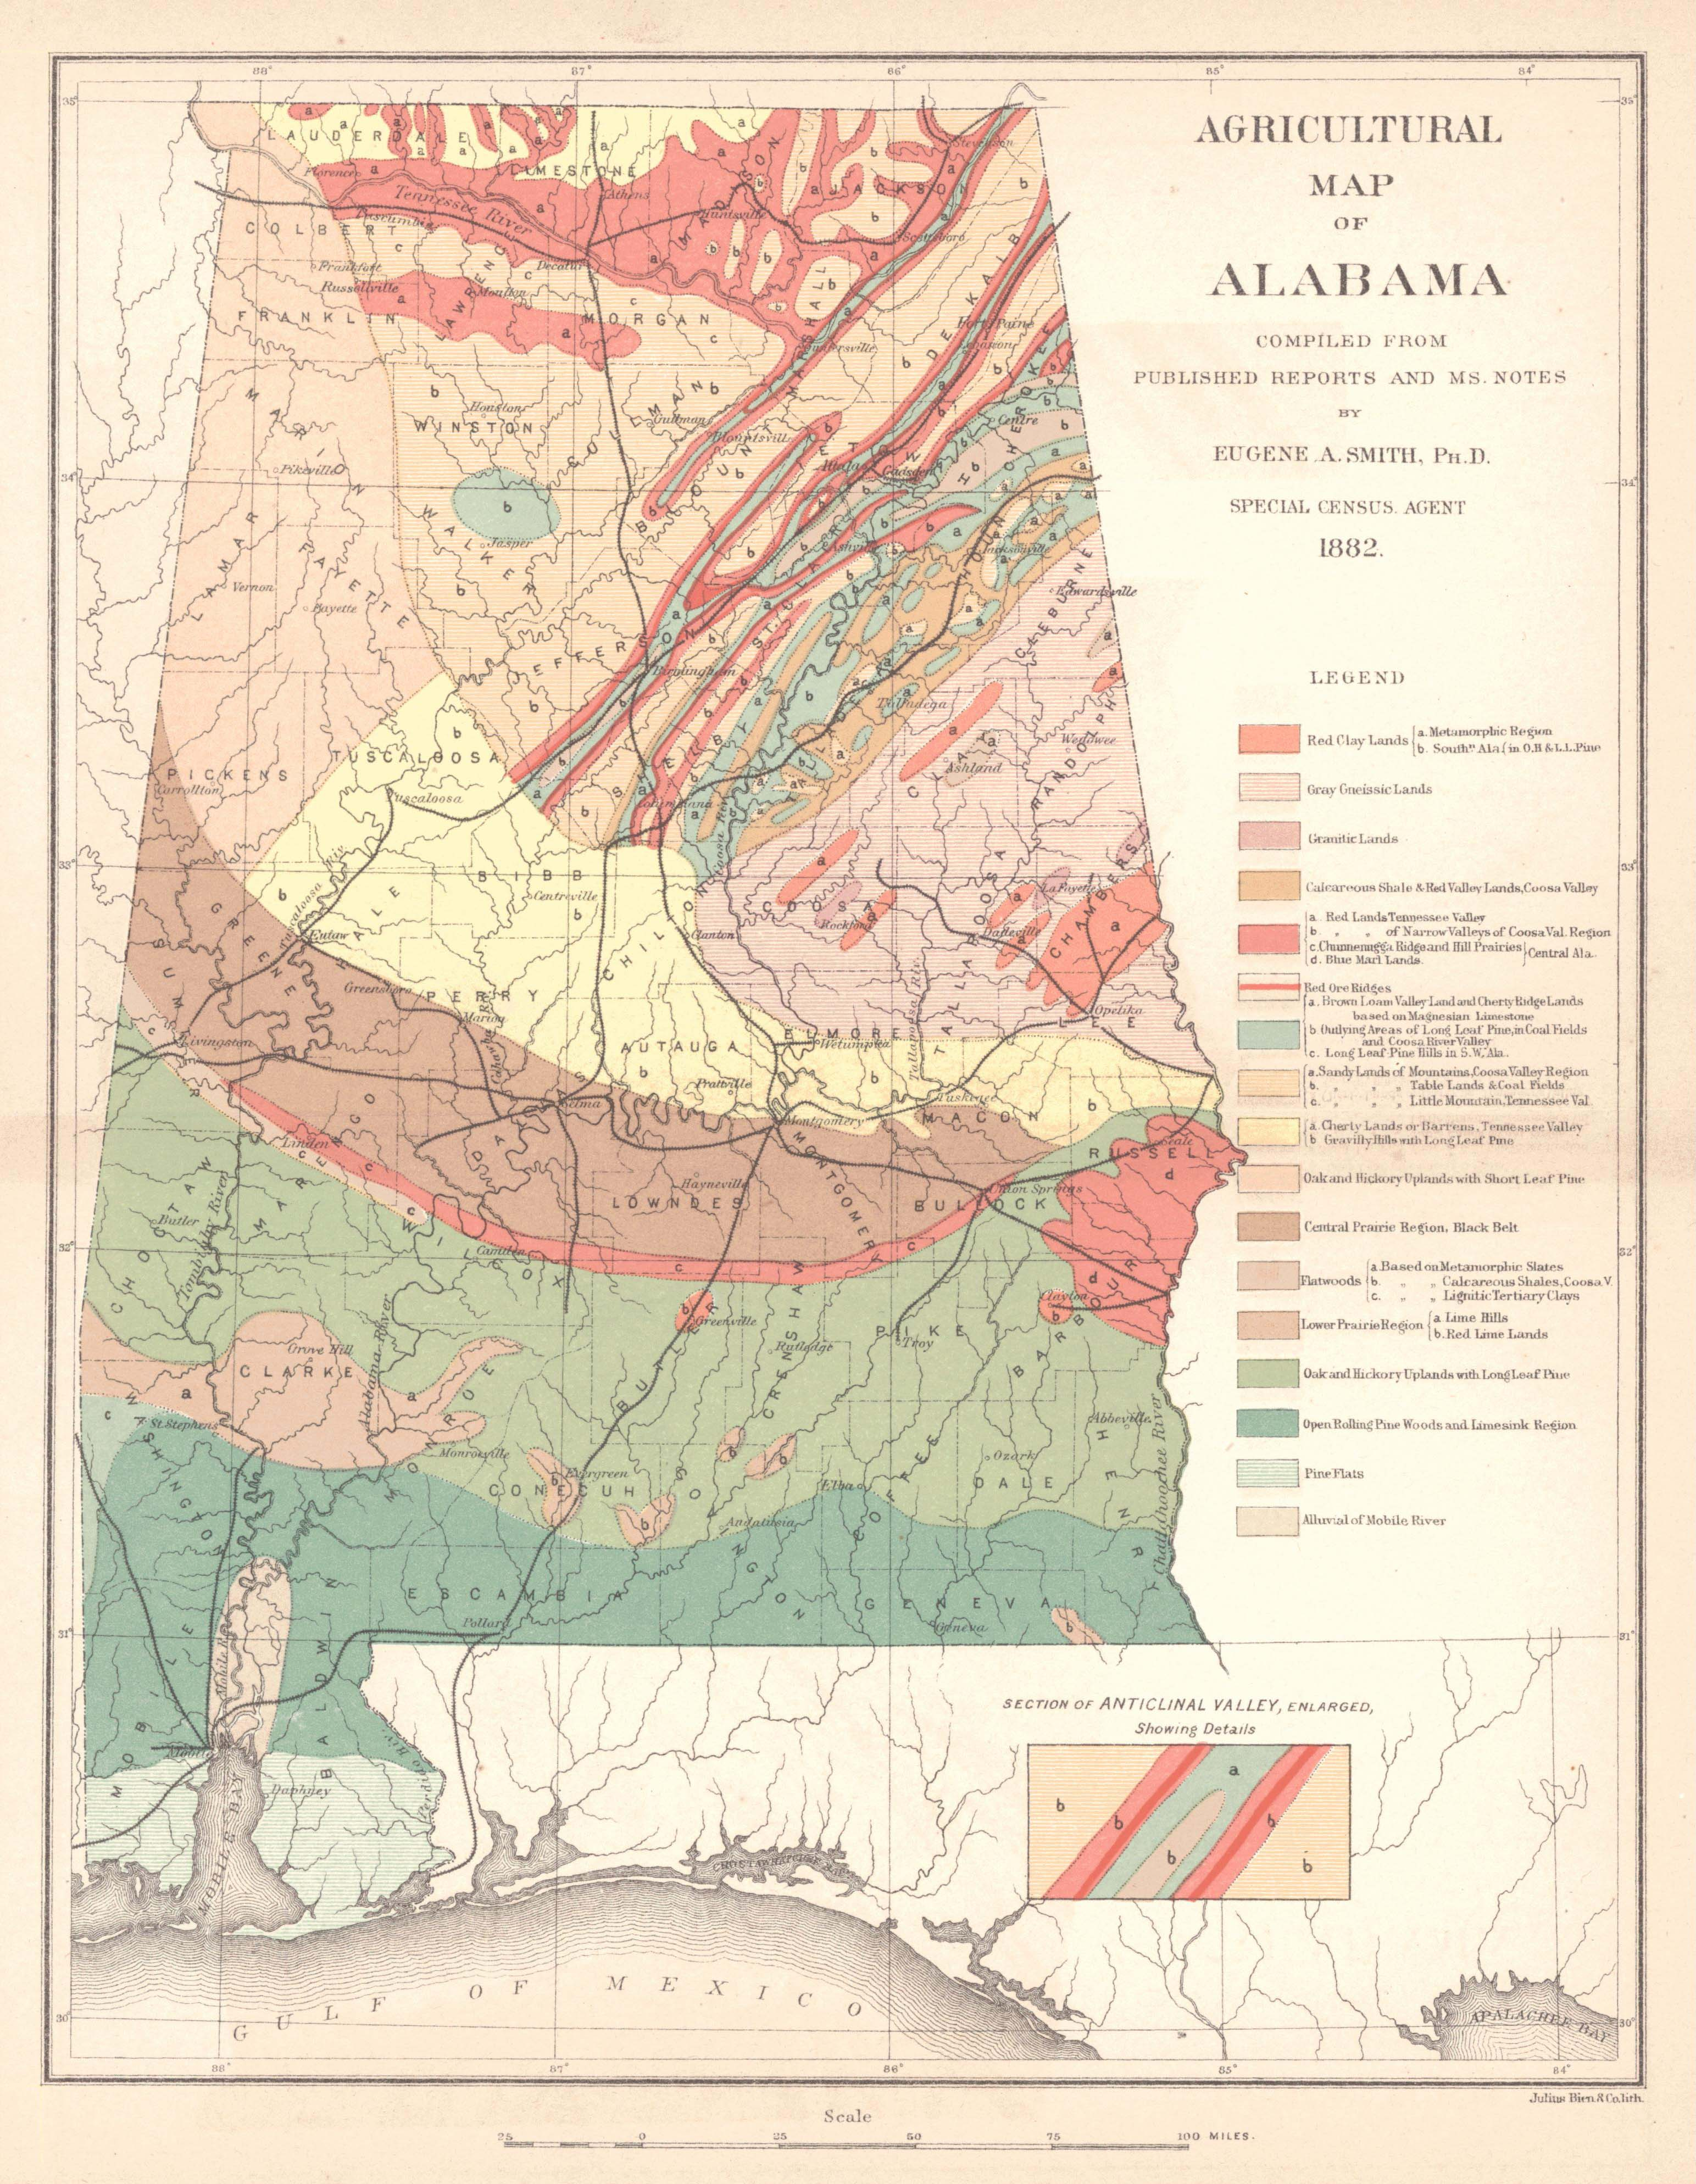 File:1882 Agricultural Map of Alabama.jpeg - Wikimedia Commons